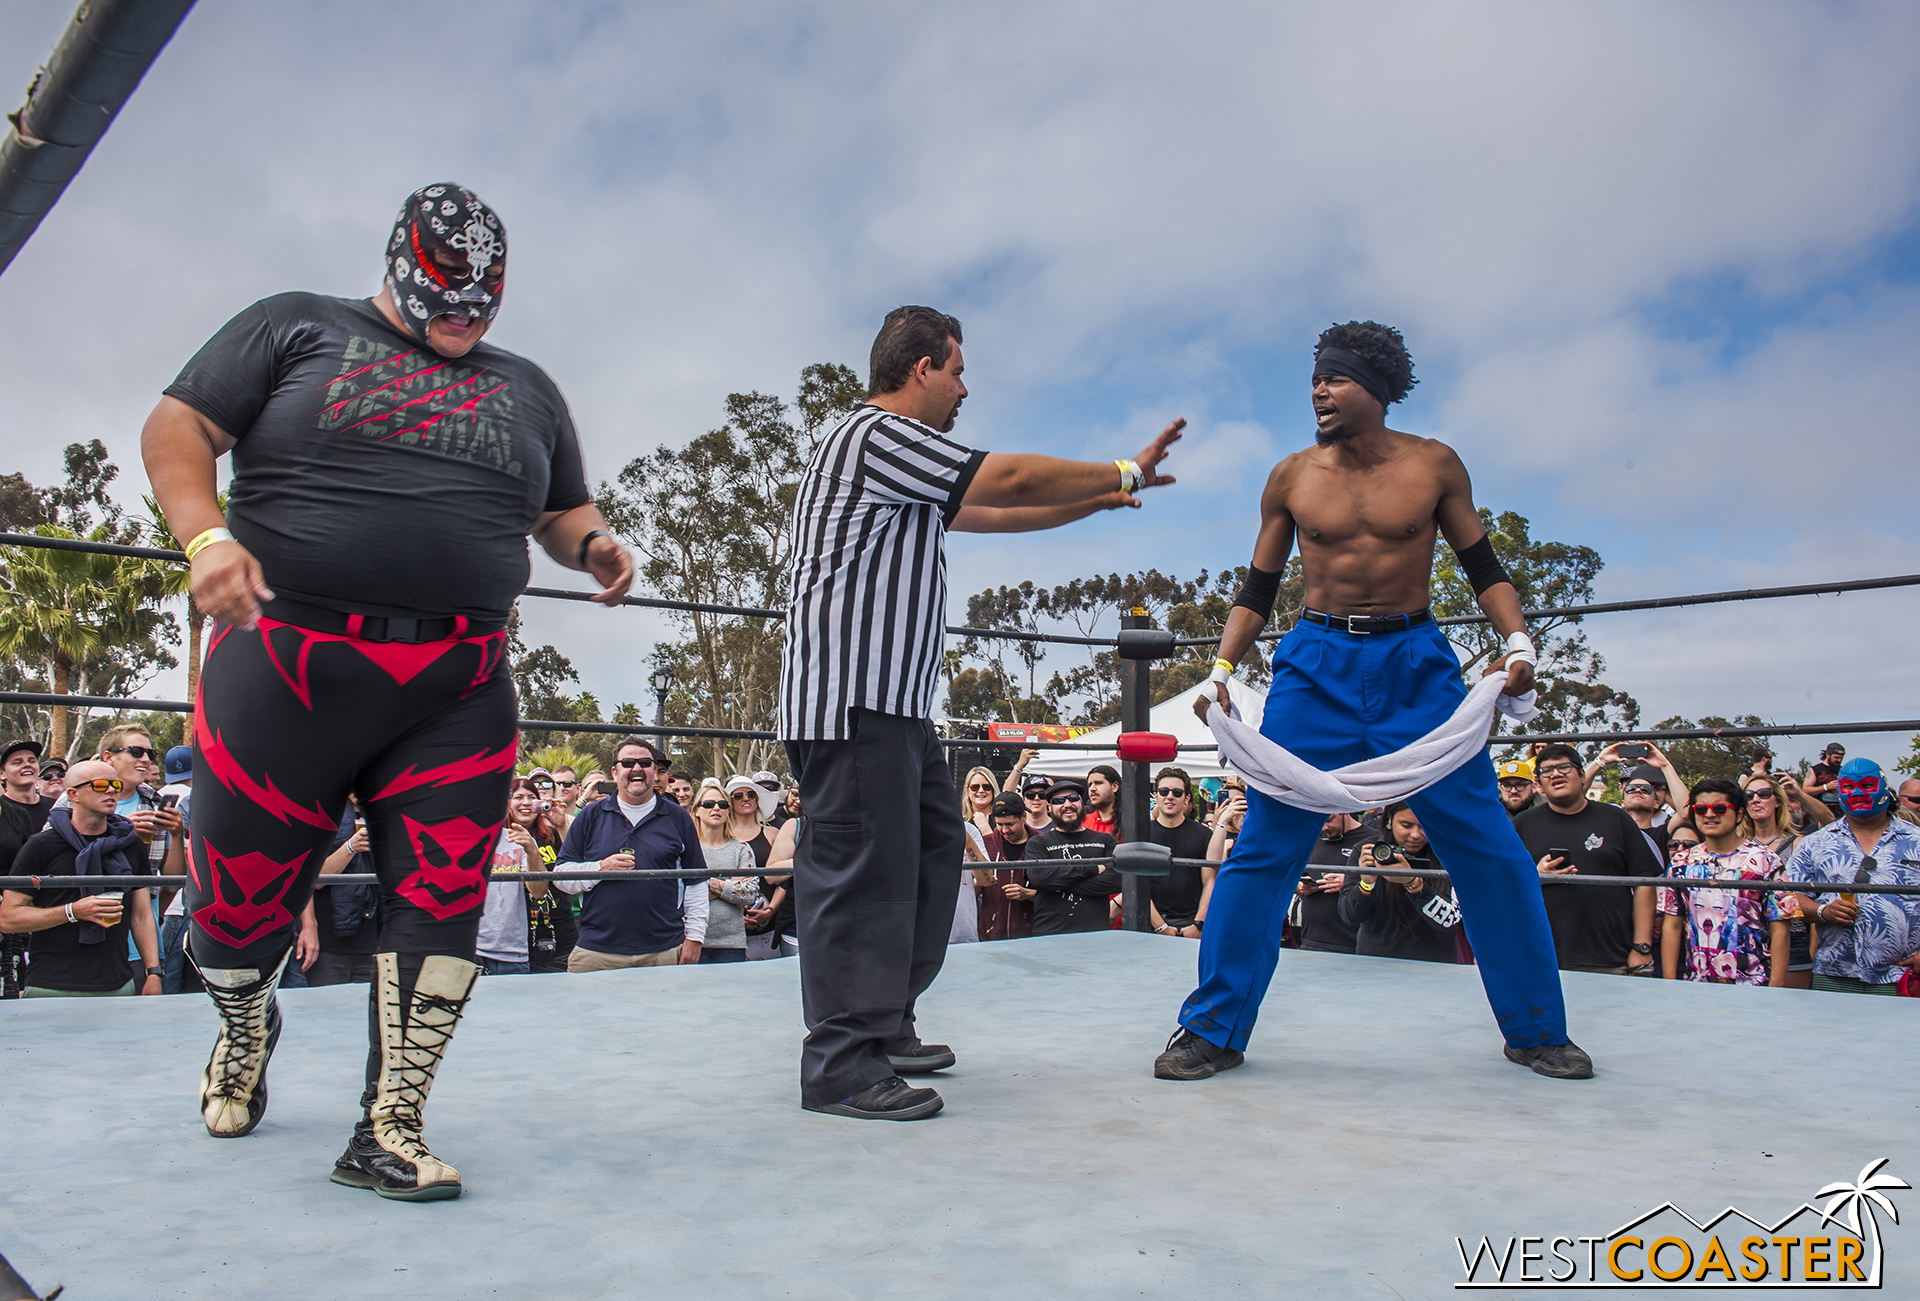 The festival showcased lucha libre wrestling once again this year.